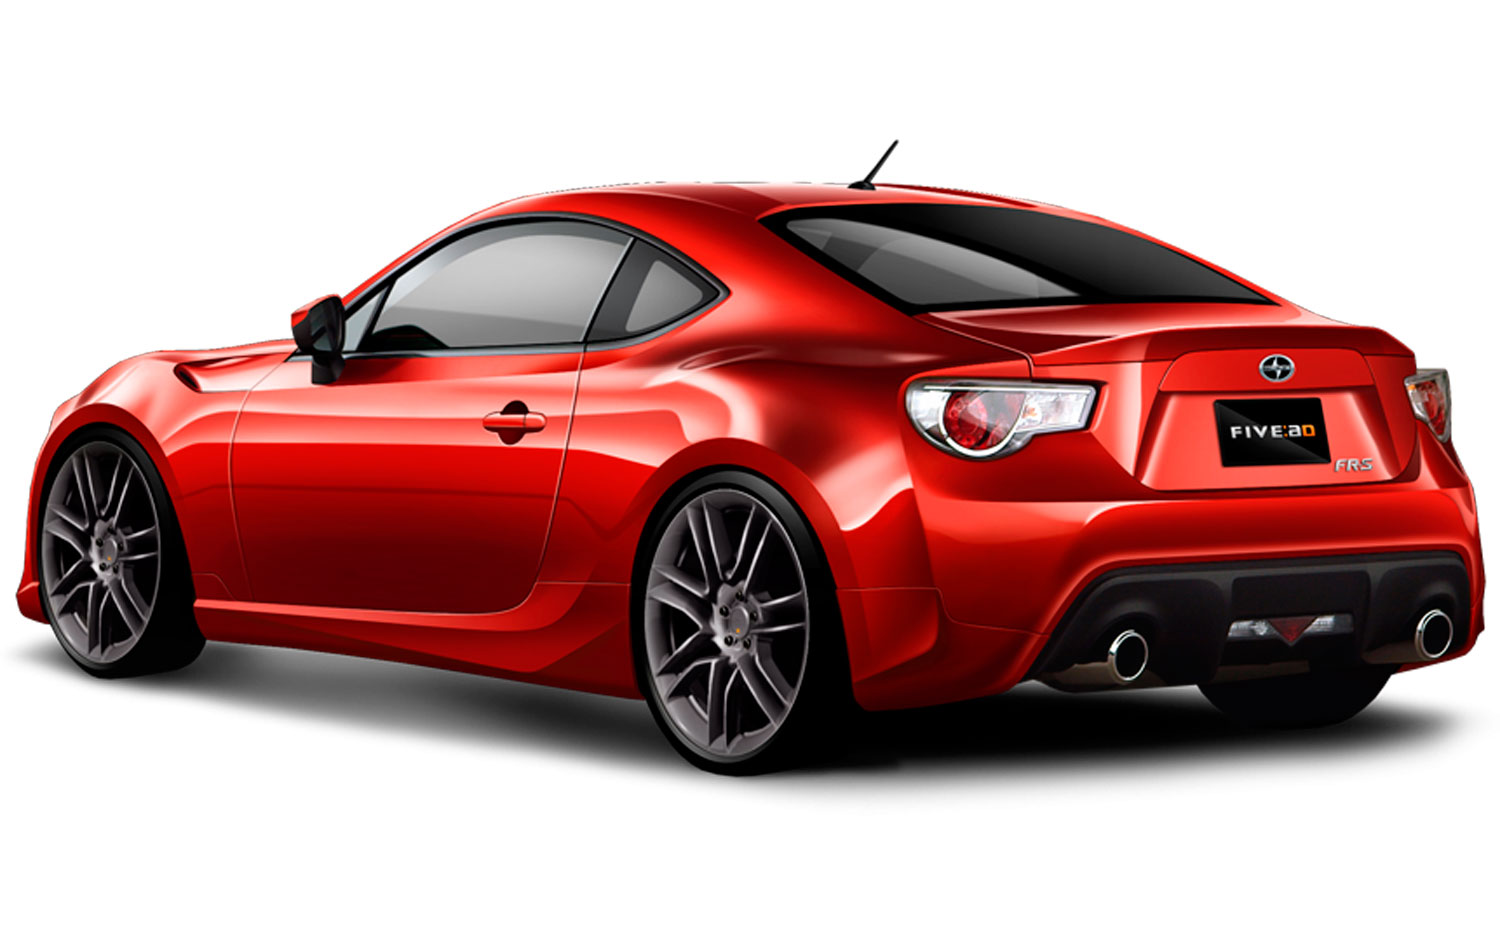 2013 scion fr s performance parts include new five axis body kit. Black Bedroom Furniture Sets. Home Design Ideas